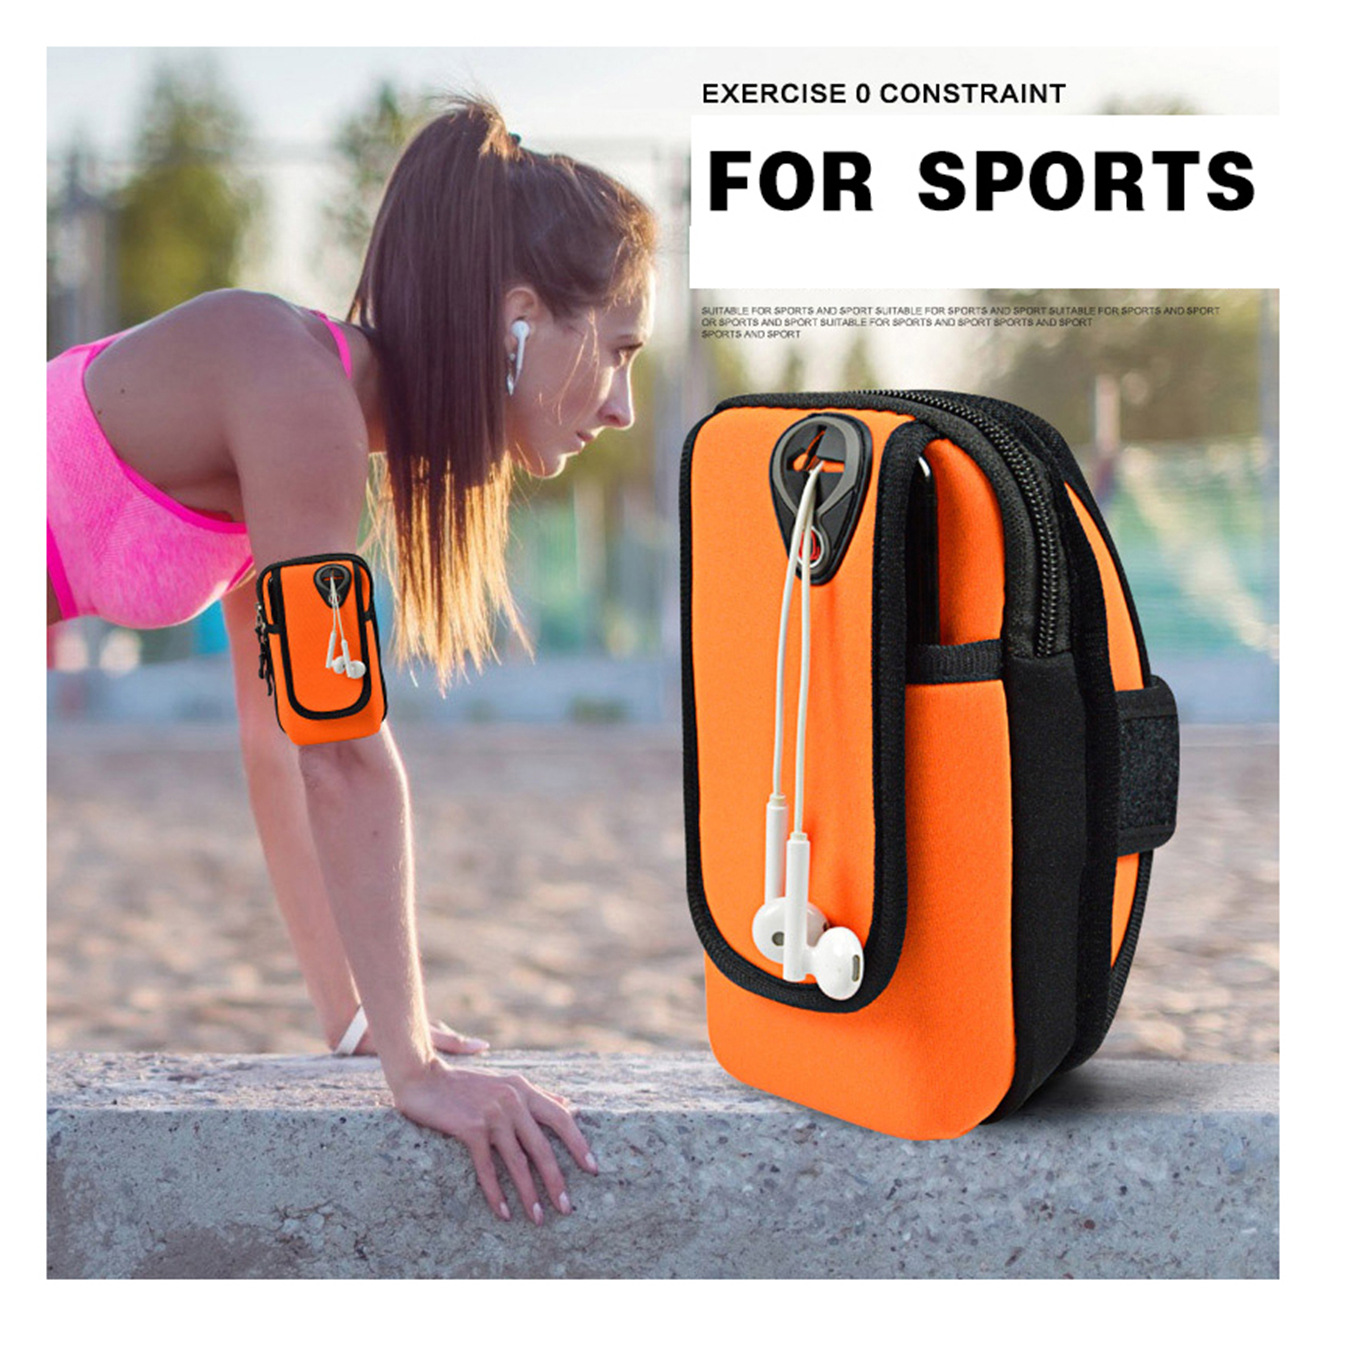 Universal Arm Bags Cases 6 Inch Coins Purse Sports Phone Mobile Wallet Key Package Arm Shoulder Strap Running Belt Mini Bag